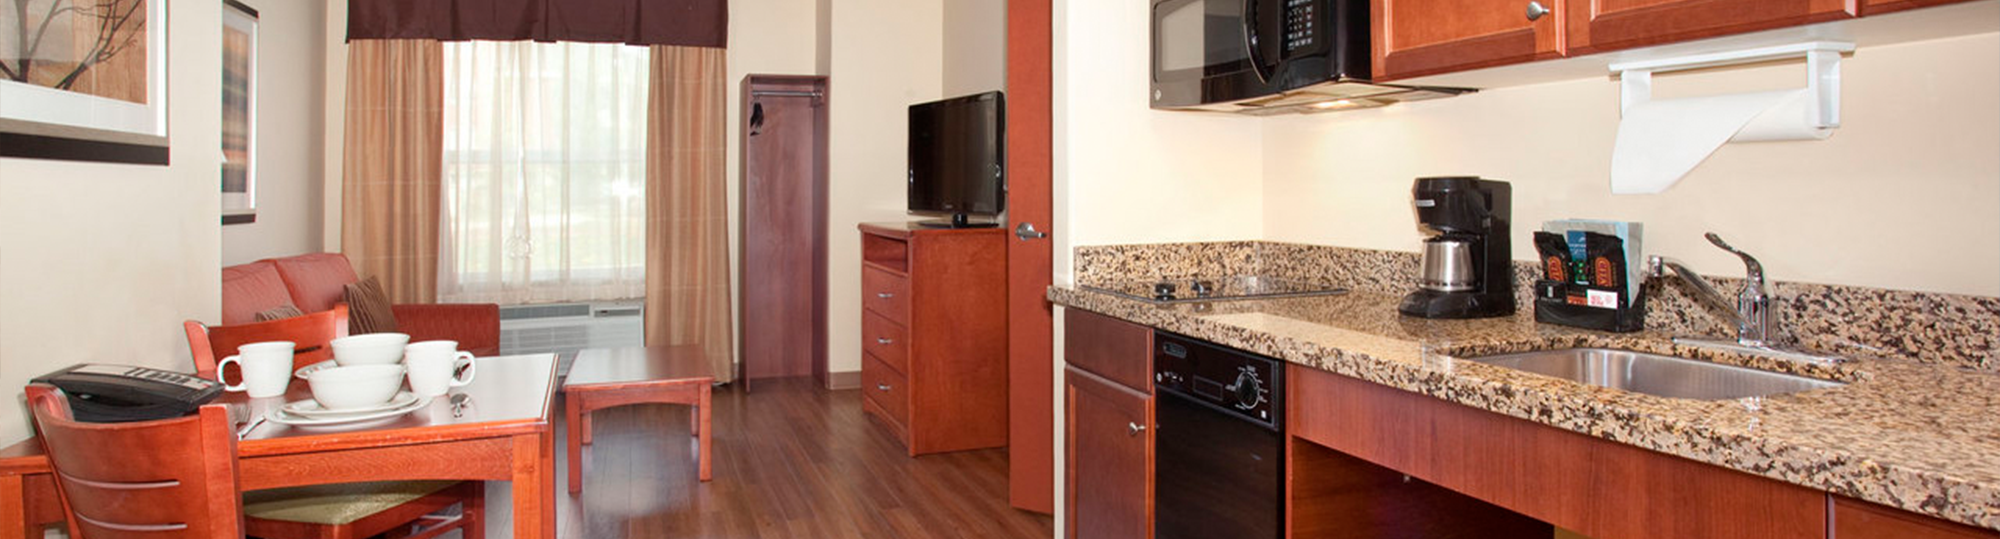 Mainstay Suites Military Discount with Veterans Advantage